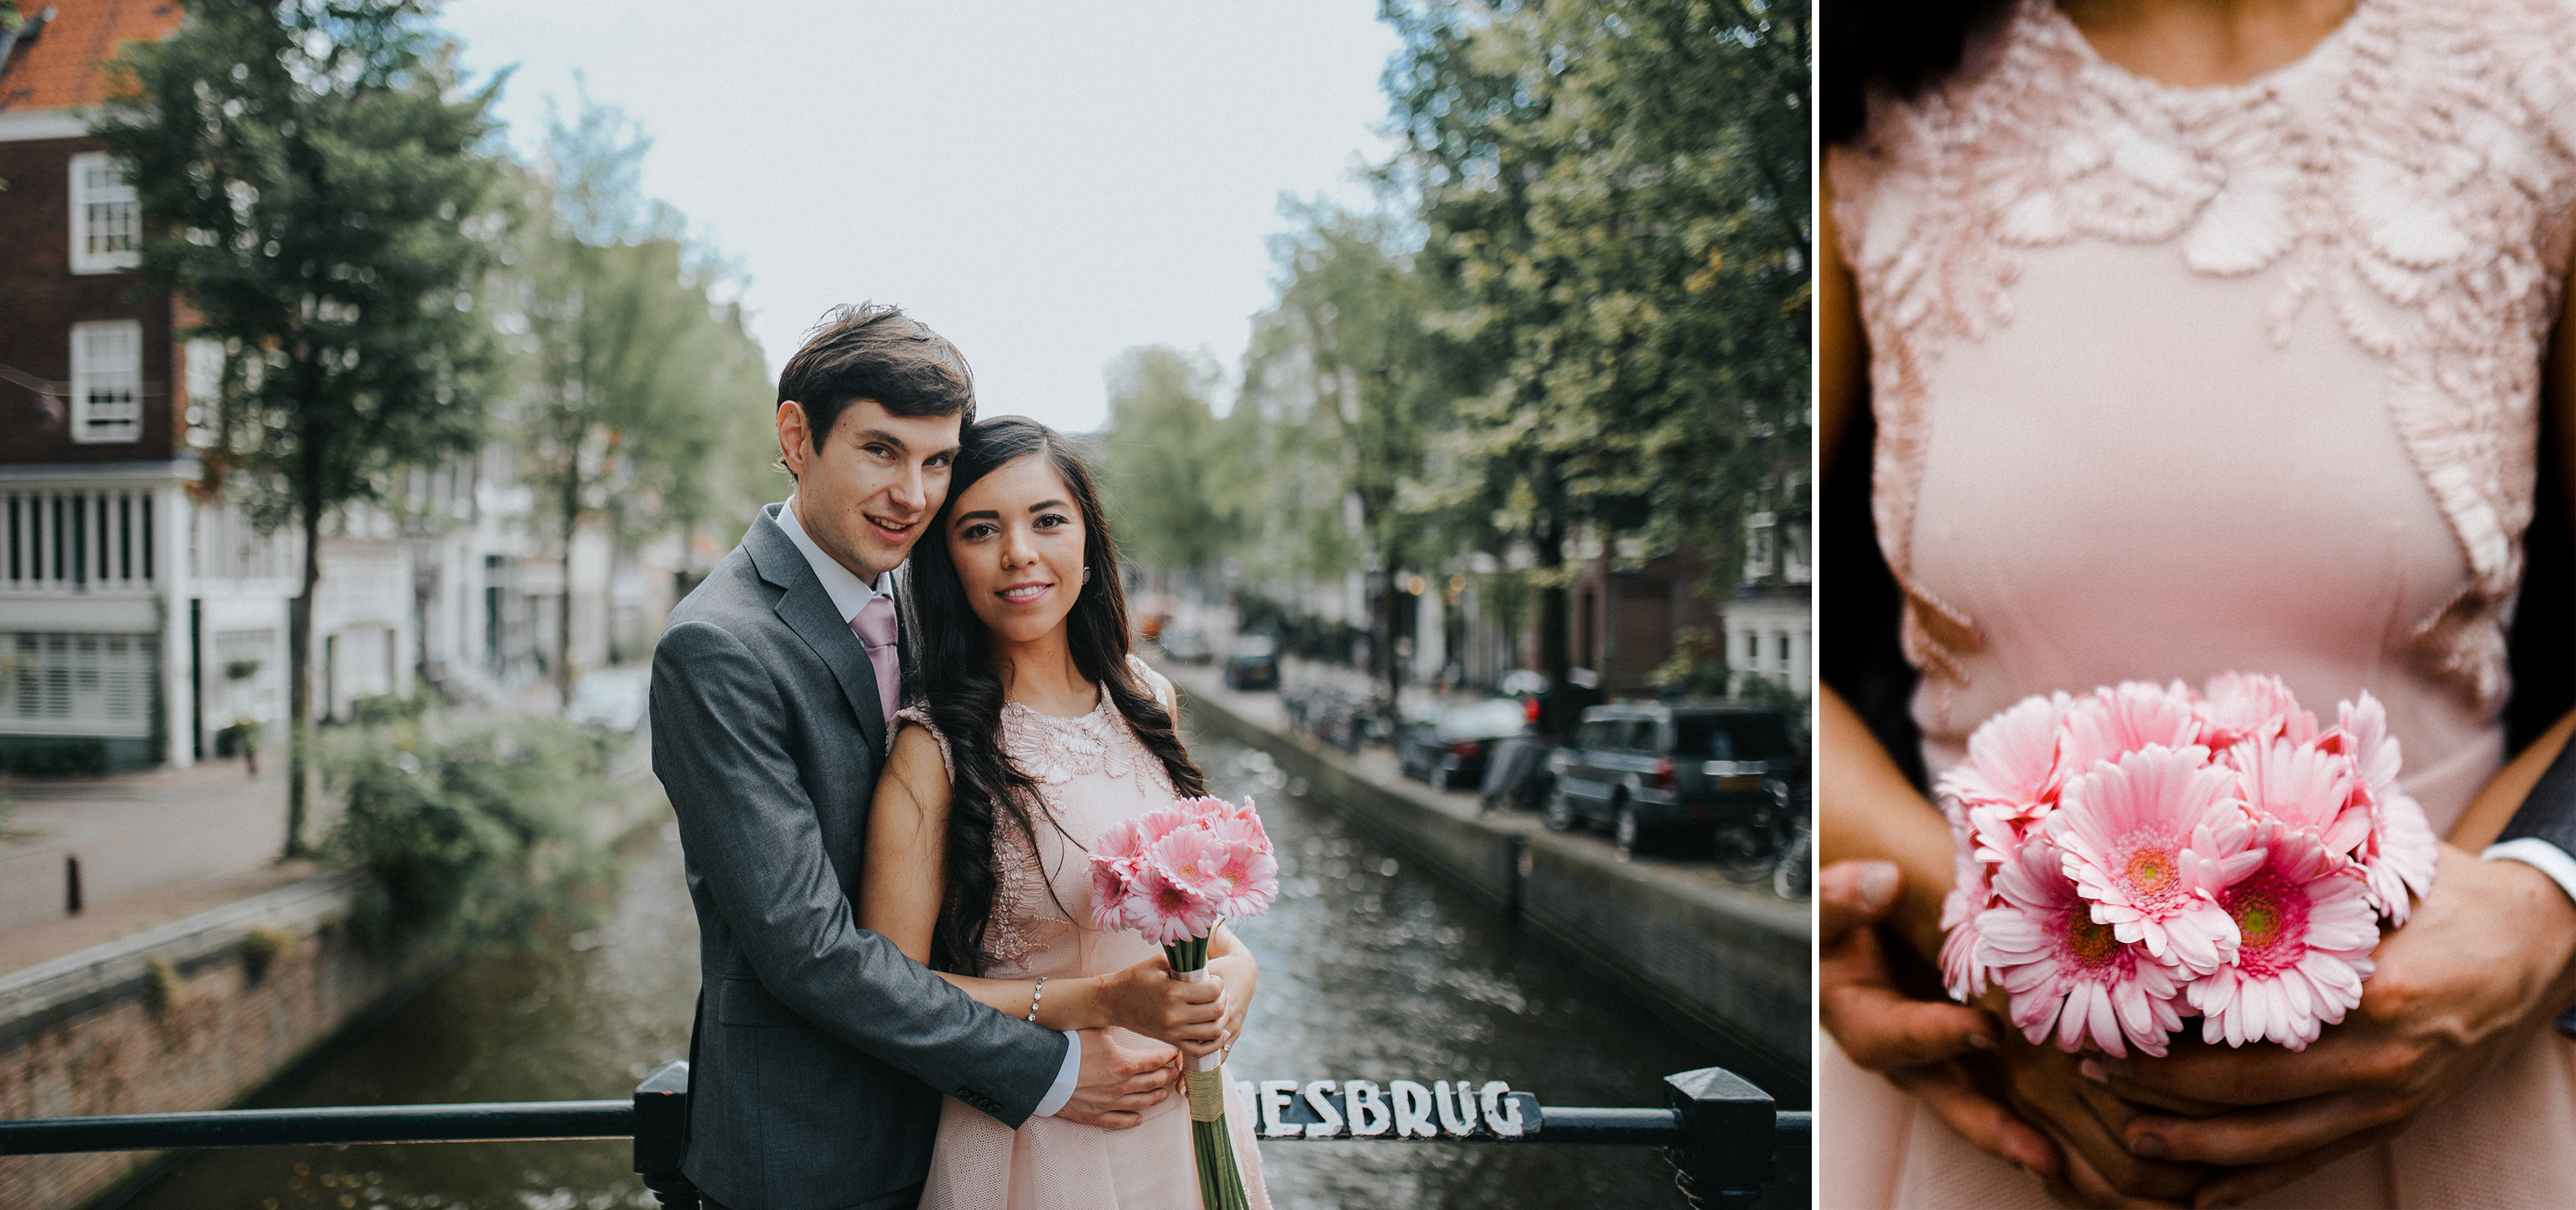 Amsterdam_Pre-wedding_Photography-3